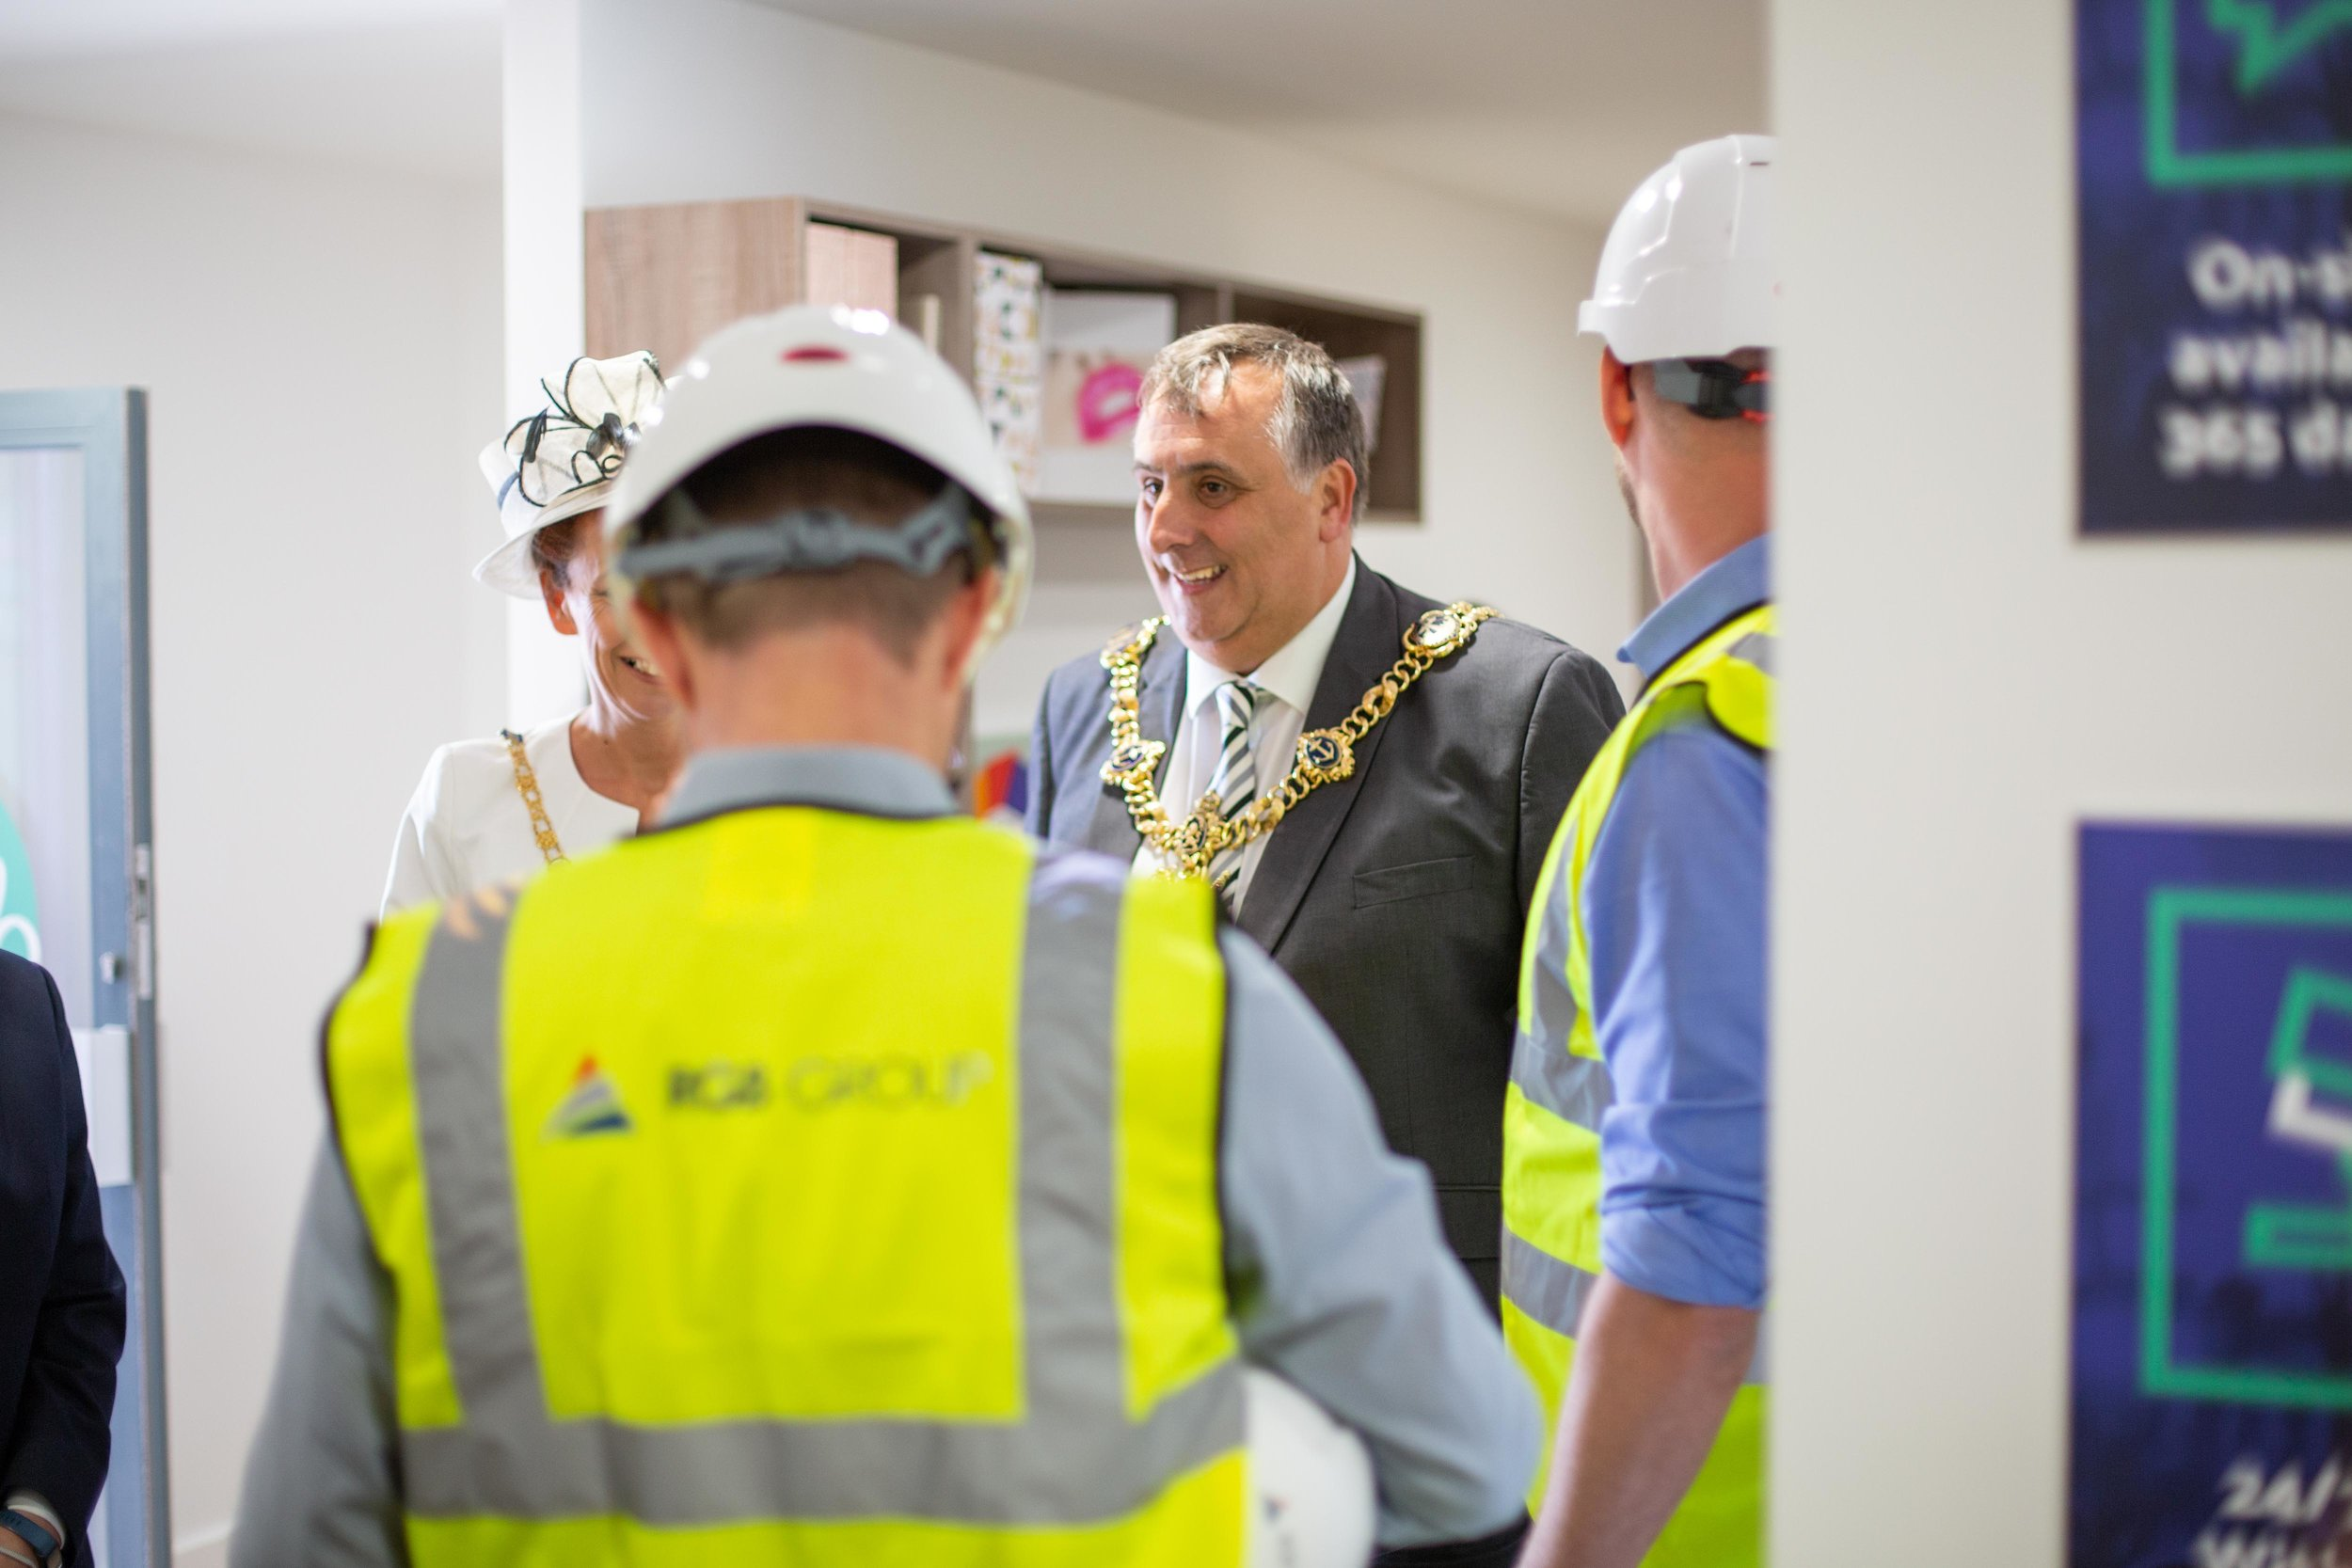 Stanhope House Topping Out 28.05.19 - Solent Sky Services--50.JPG